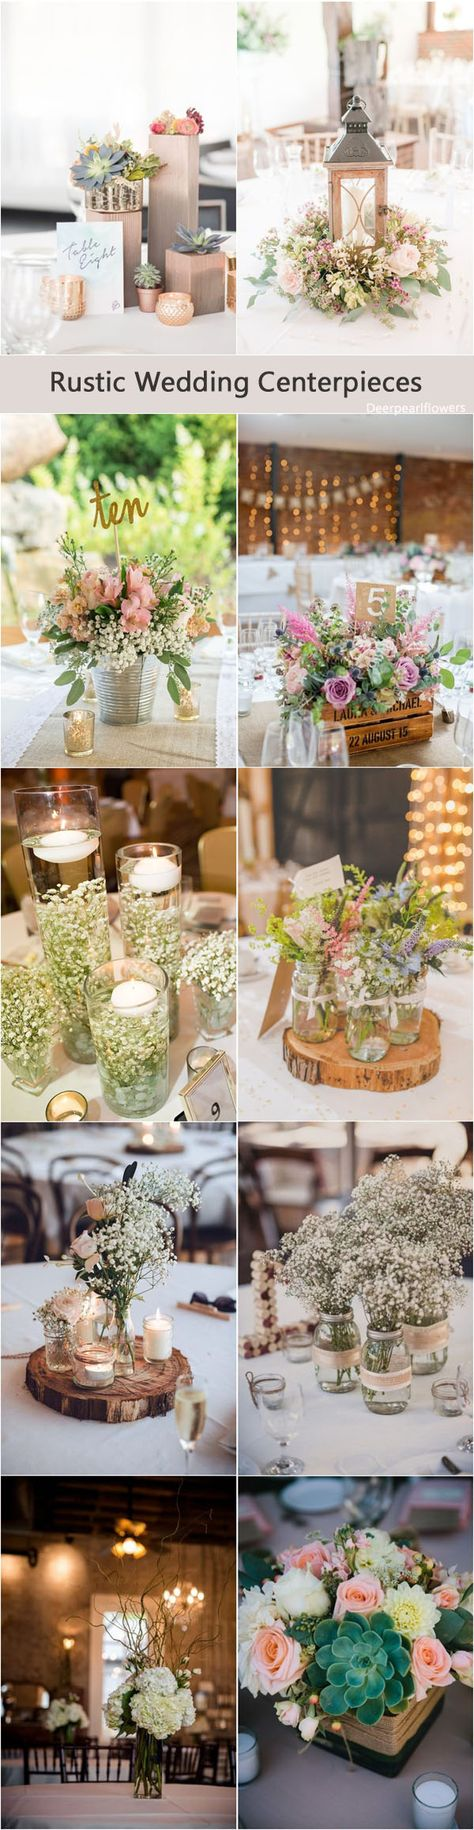 The best images about weddings on pinterest rustic wedding